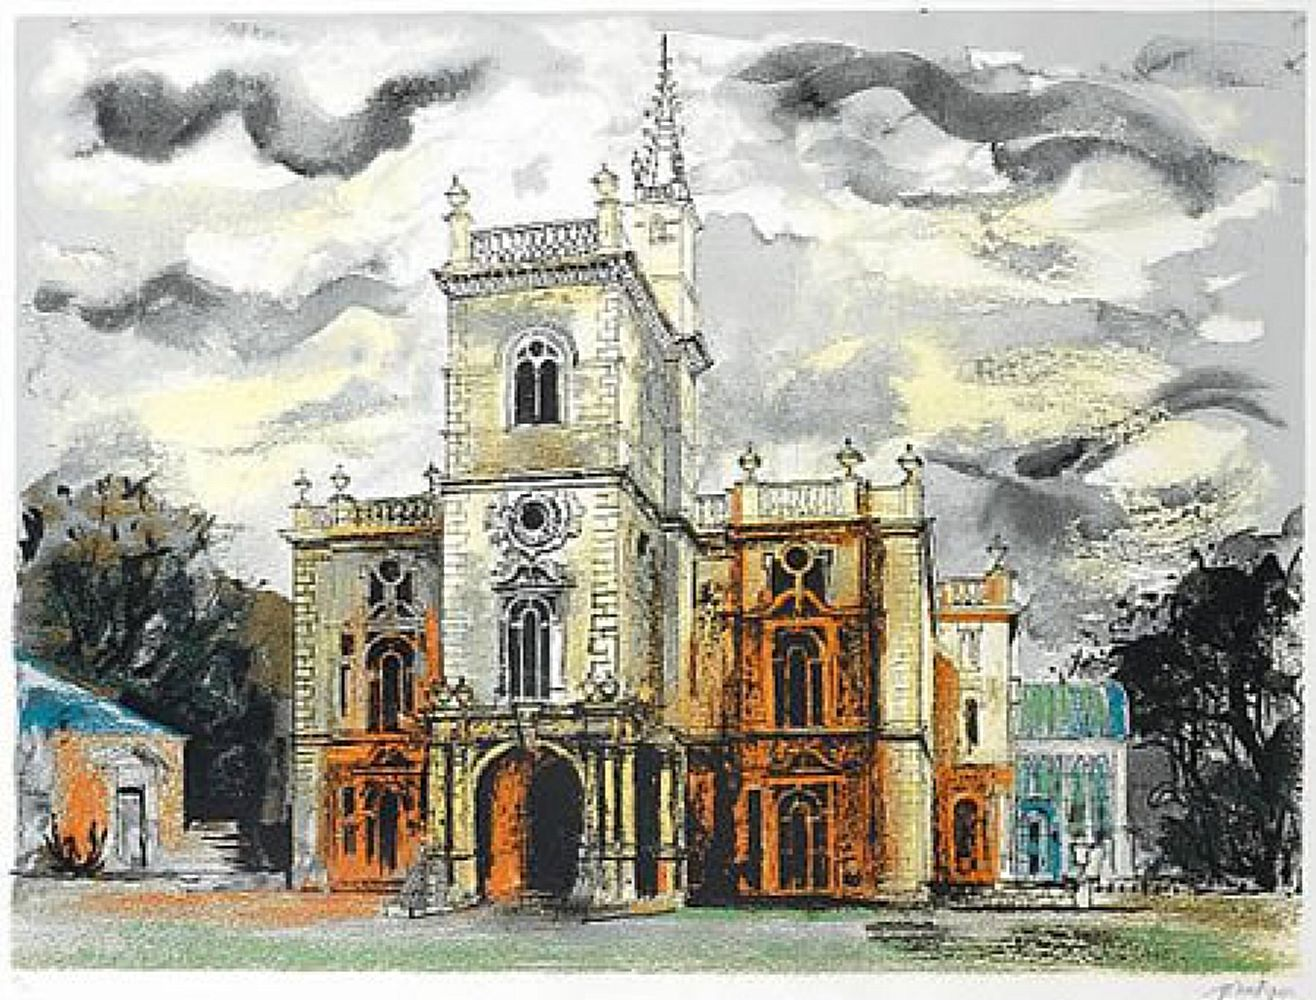 Flintham Hall | John Piper